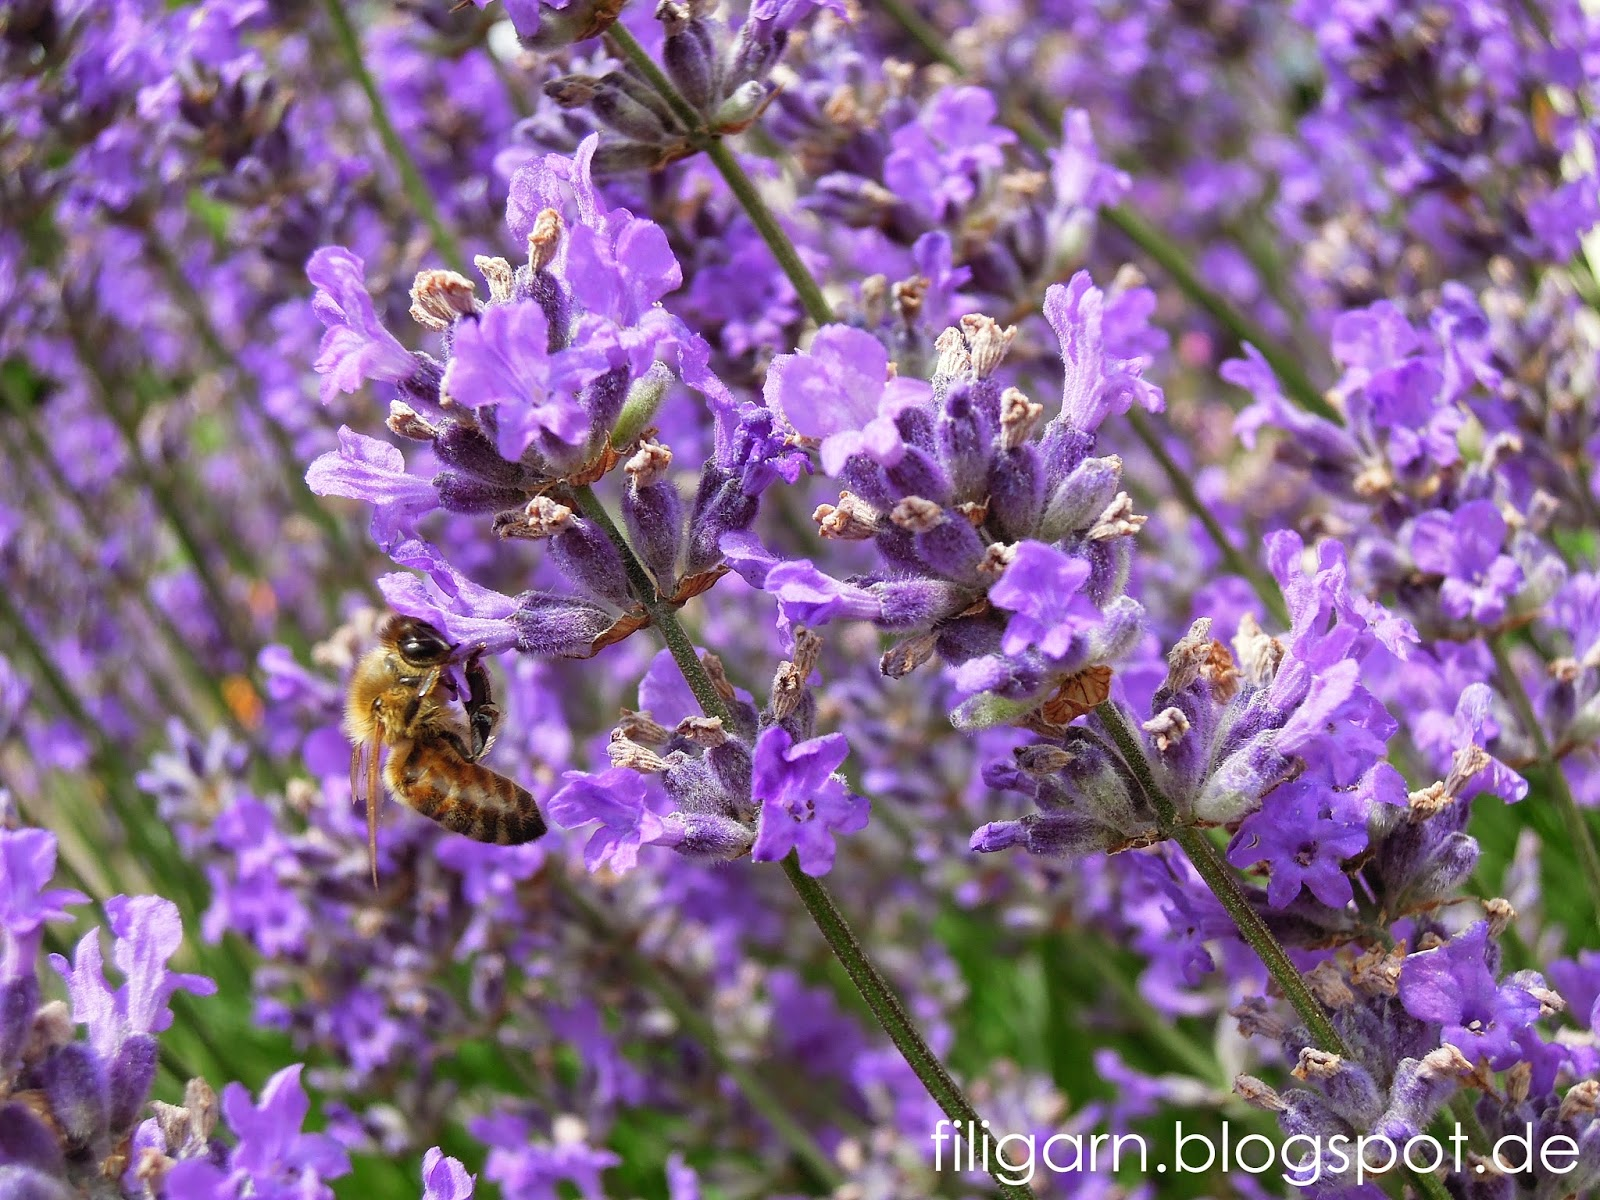 Copyright by filigarn - Bienchen am Lavendel